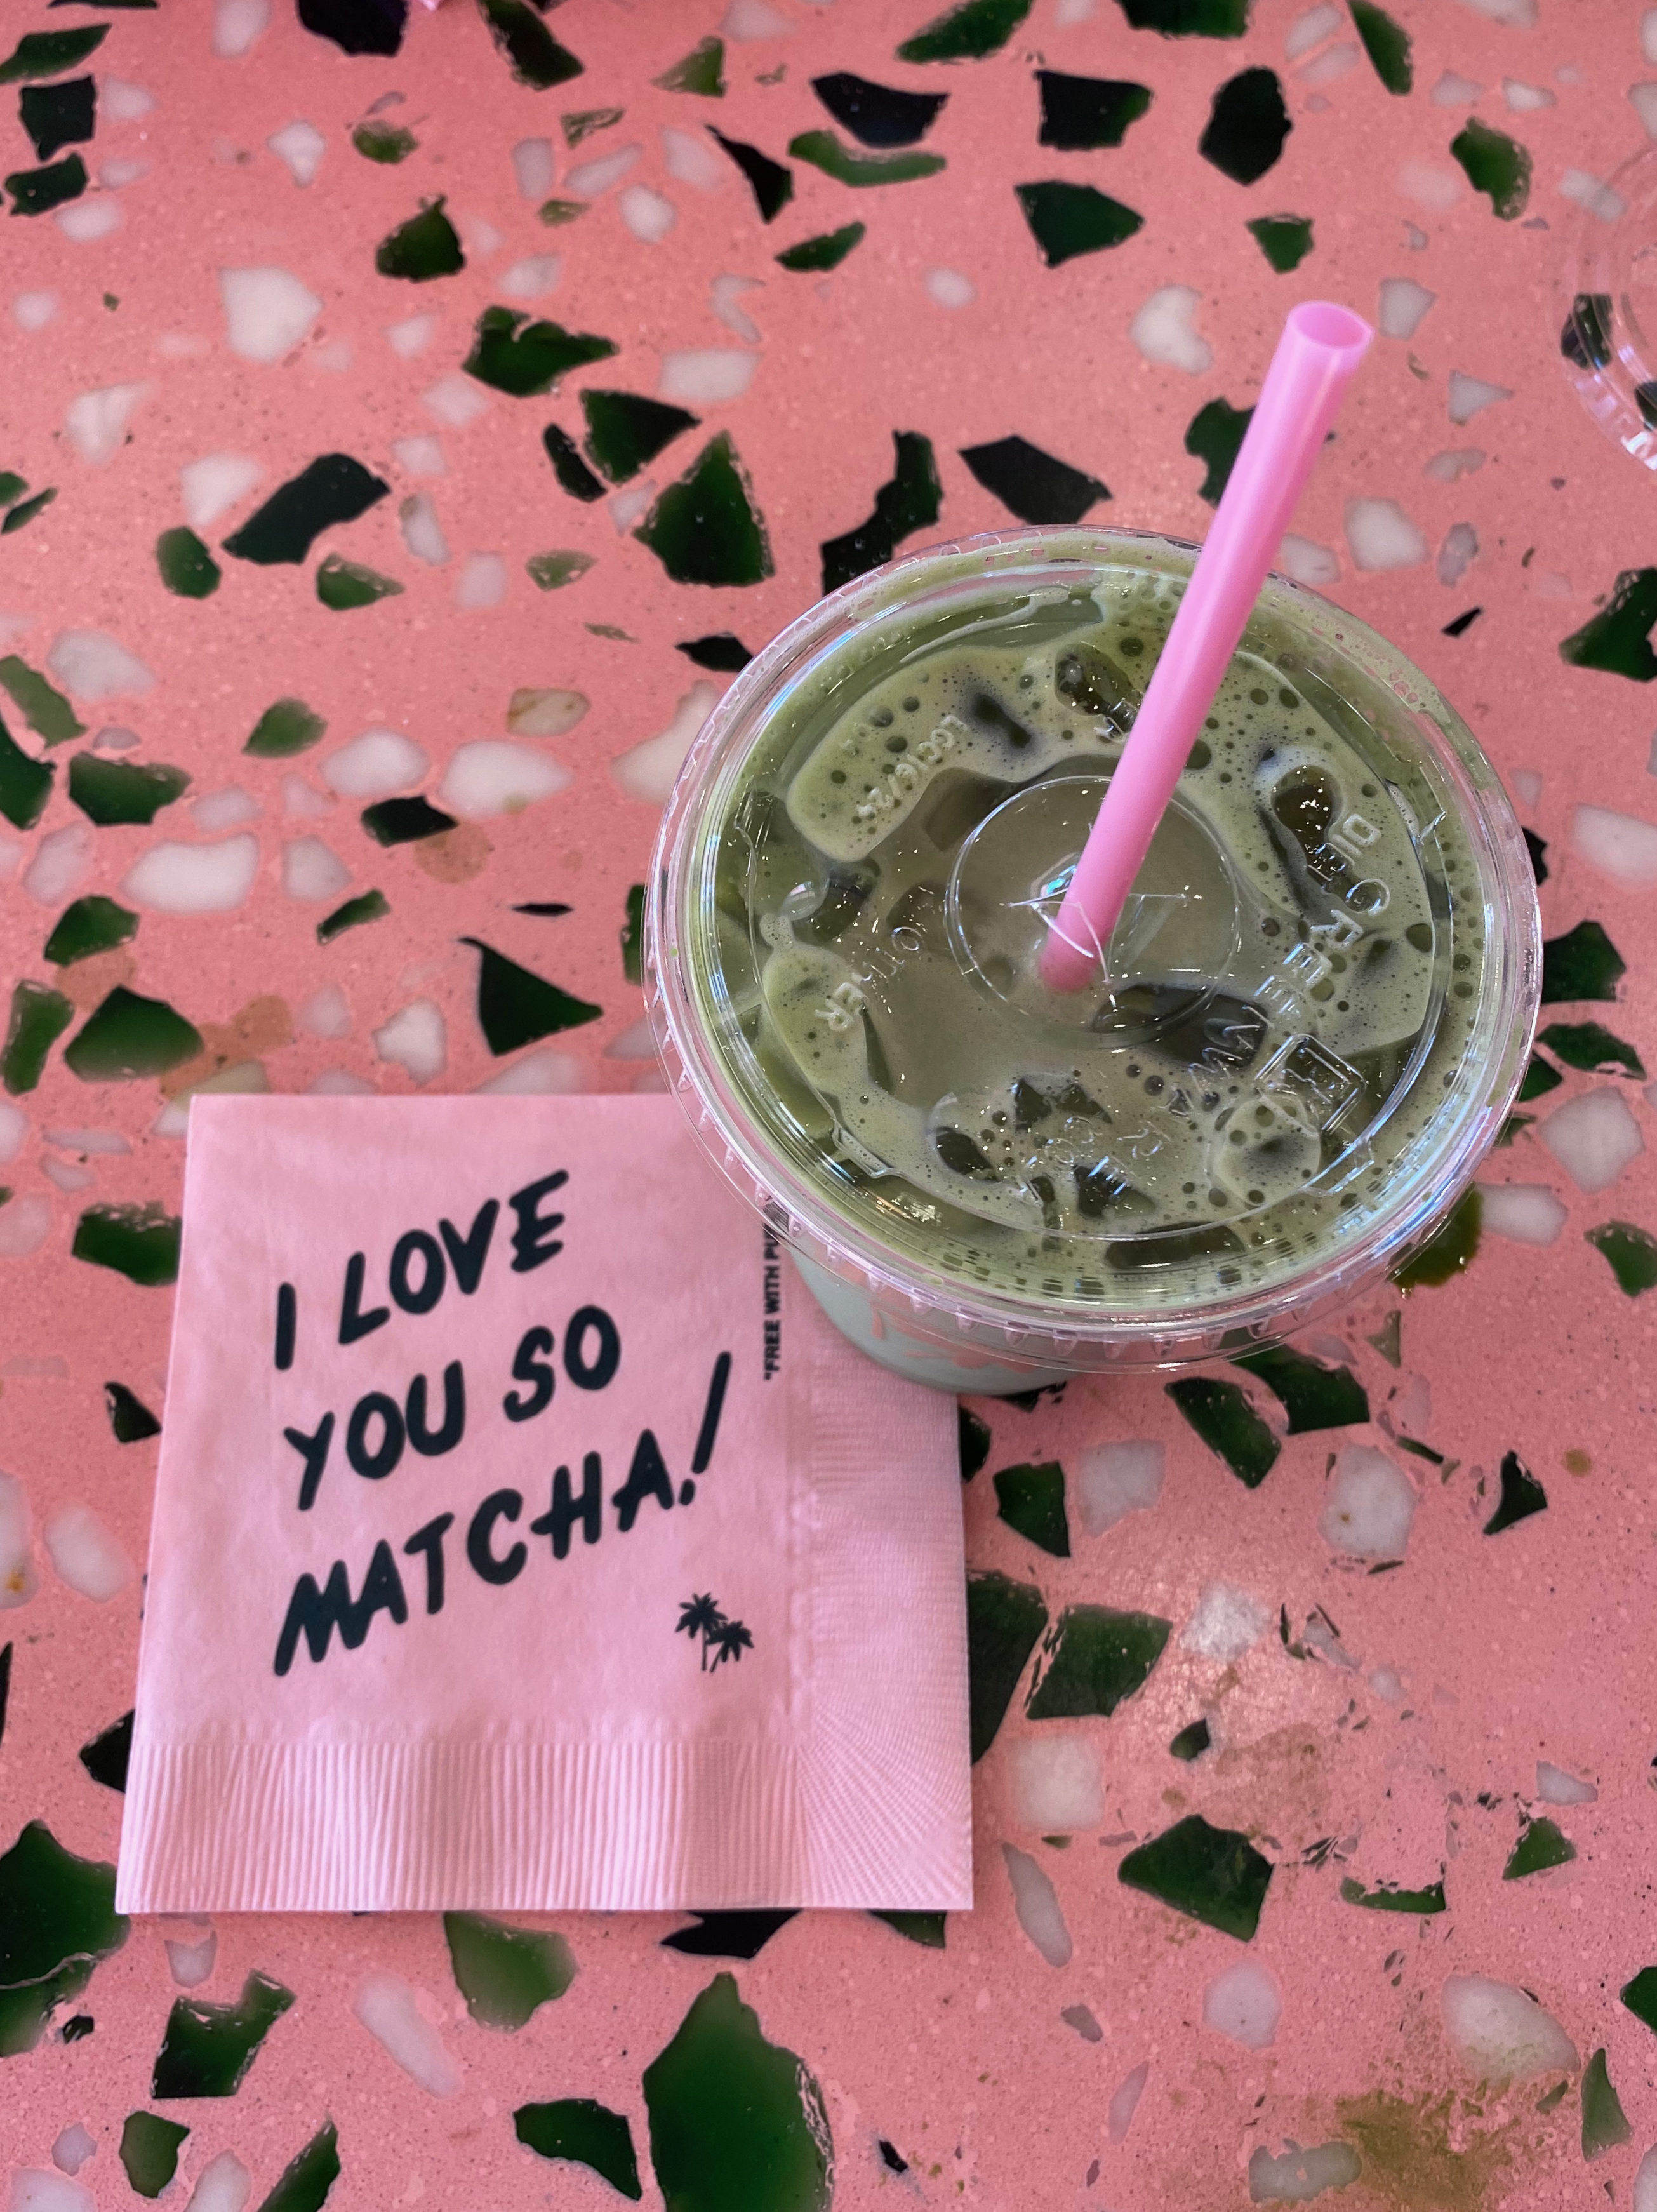 Cha Cha Matcha in Los Angeles